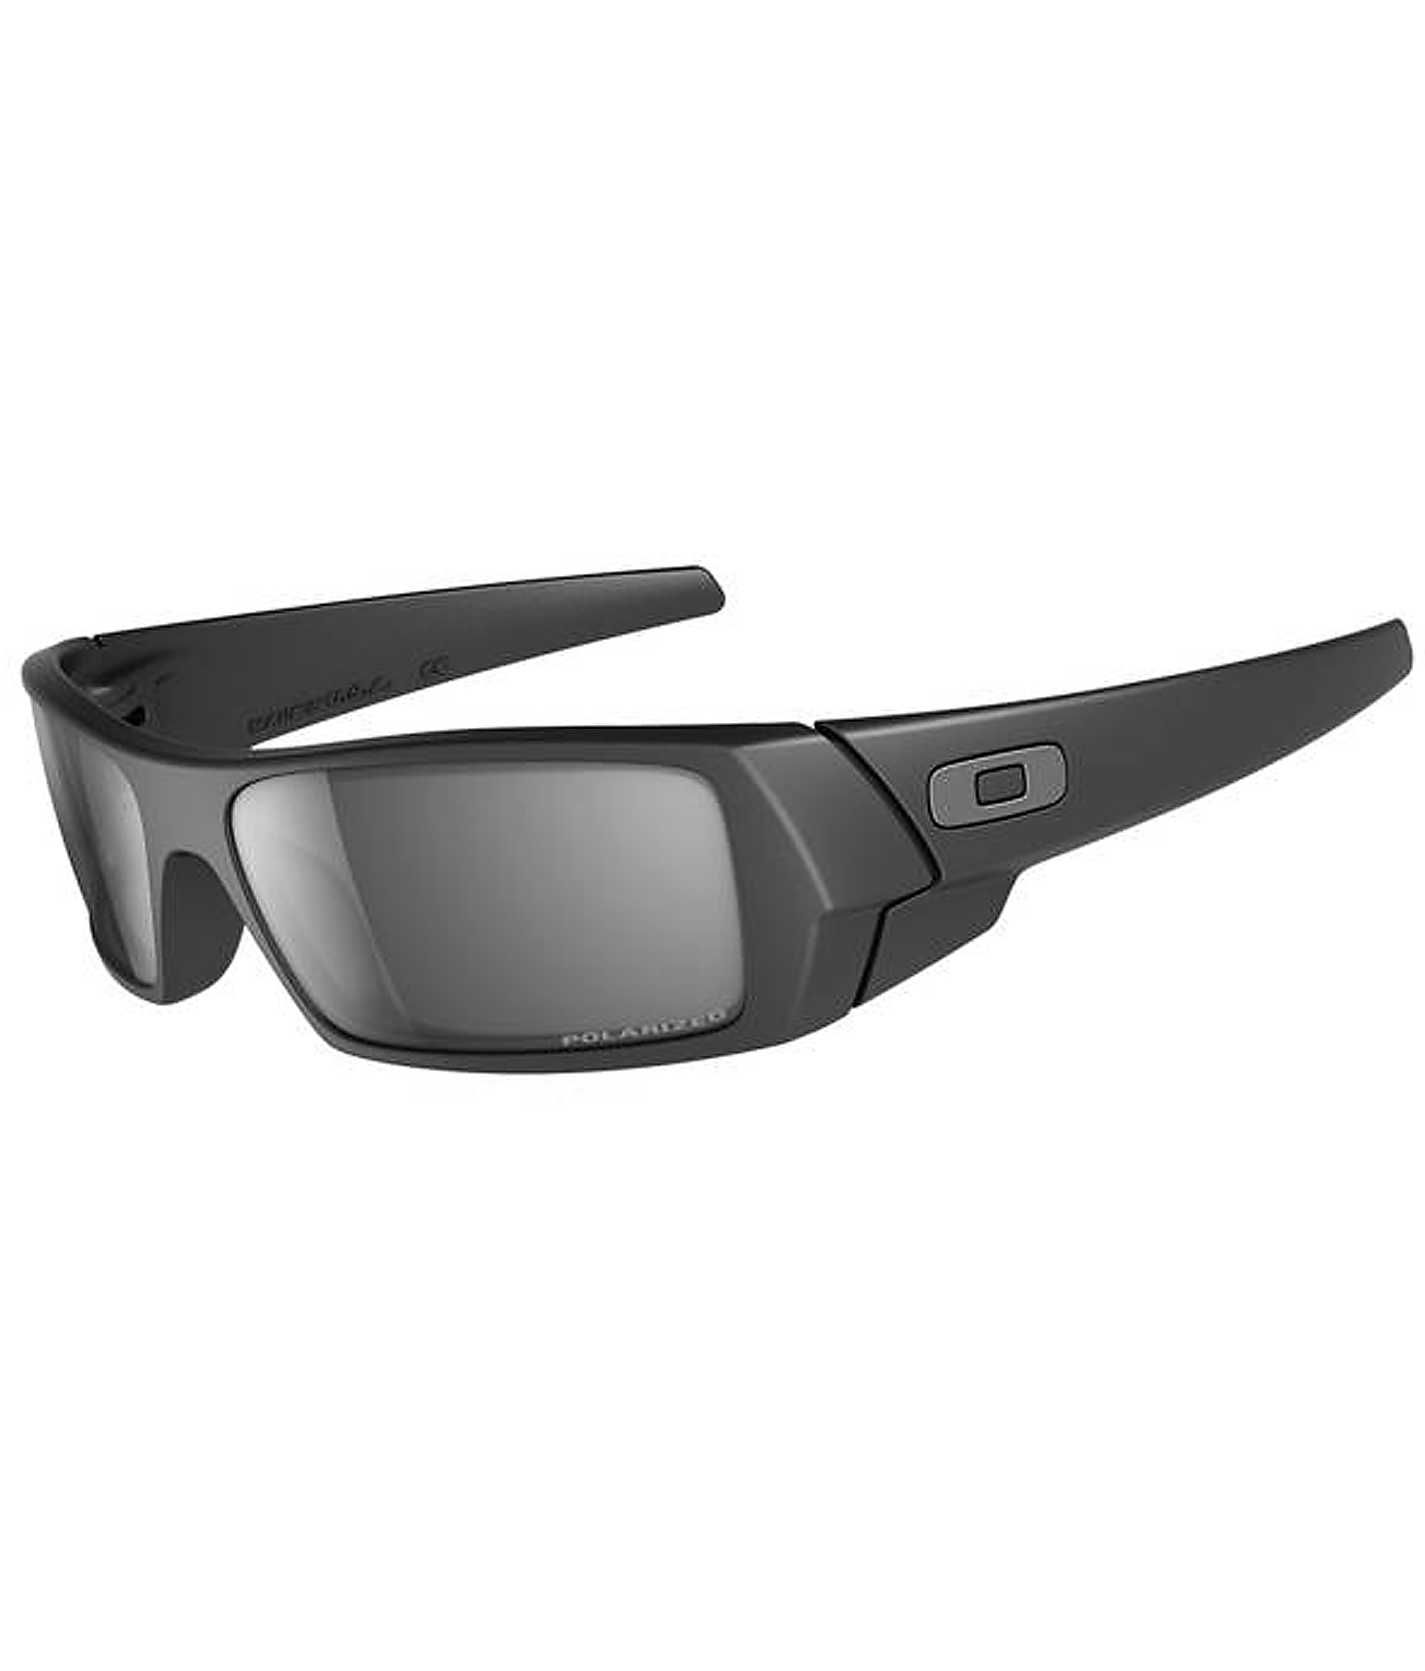 10d9e7f766 Oakley Gascan Sunglasses - Mens Accessories